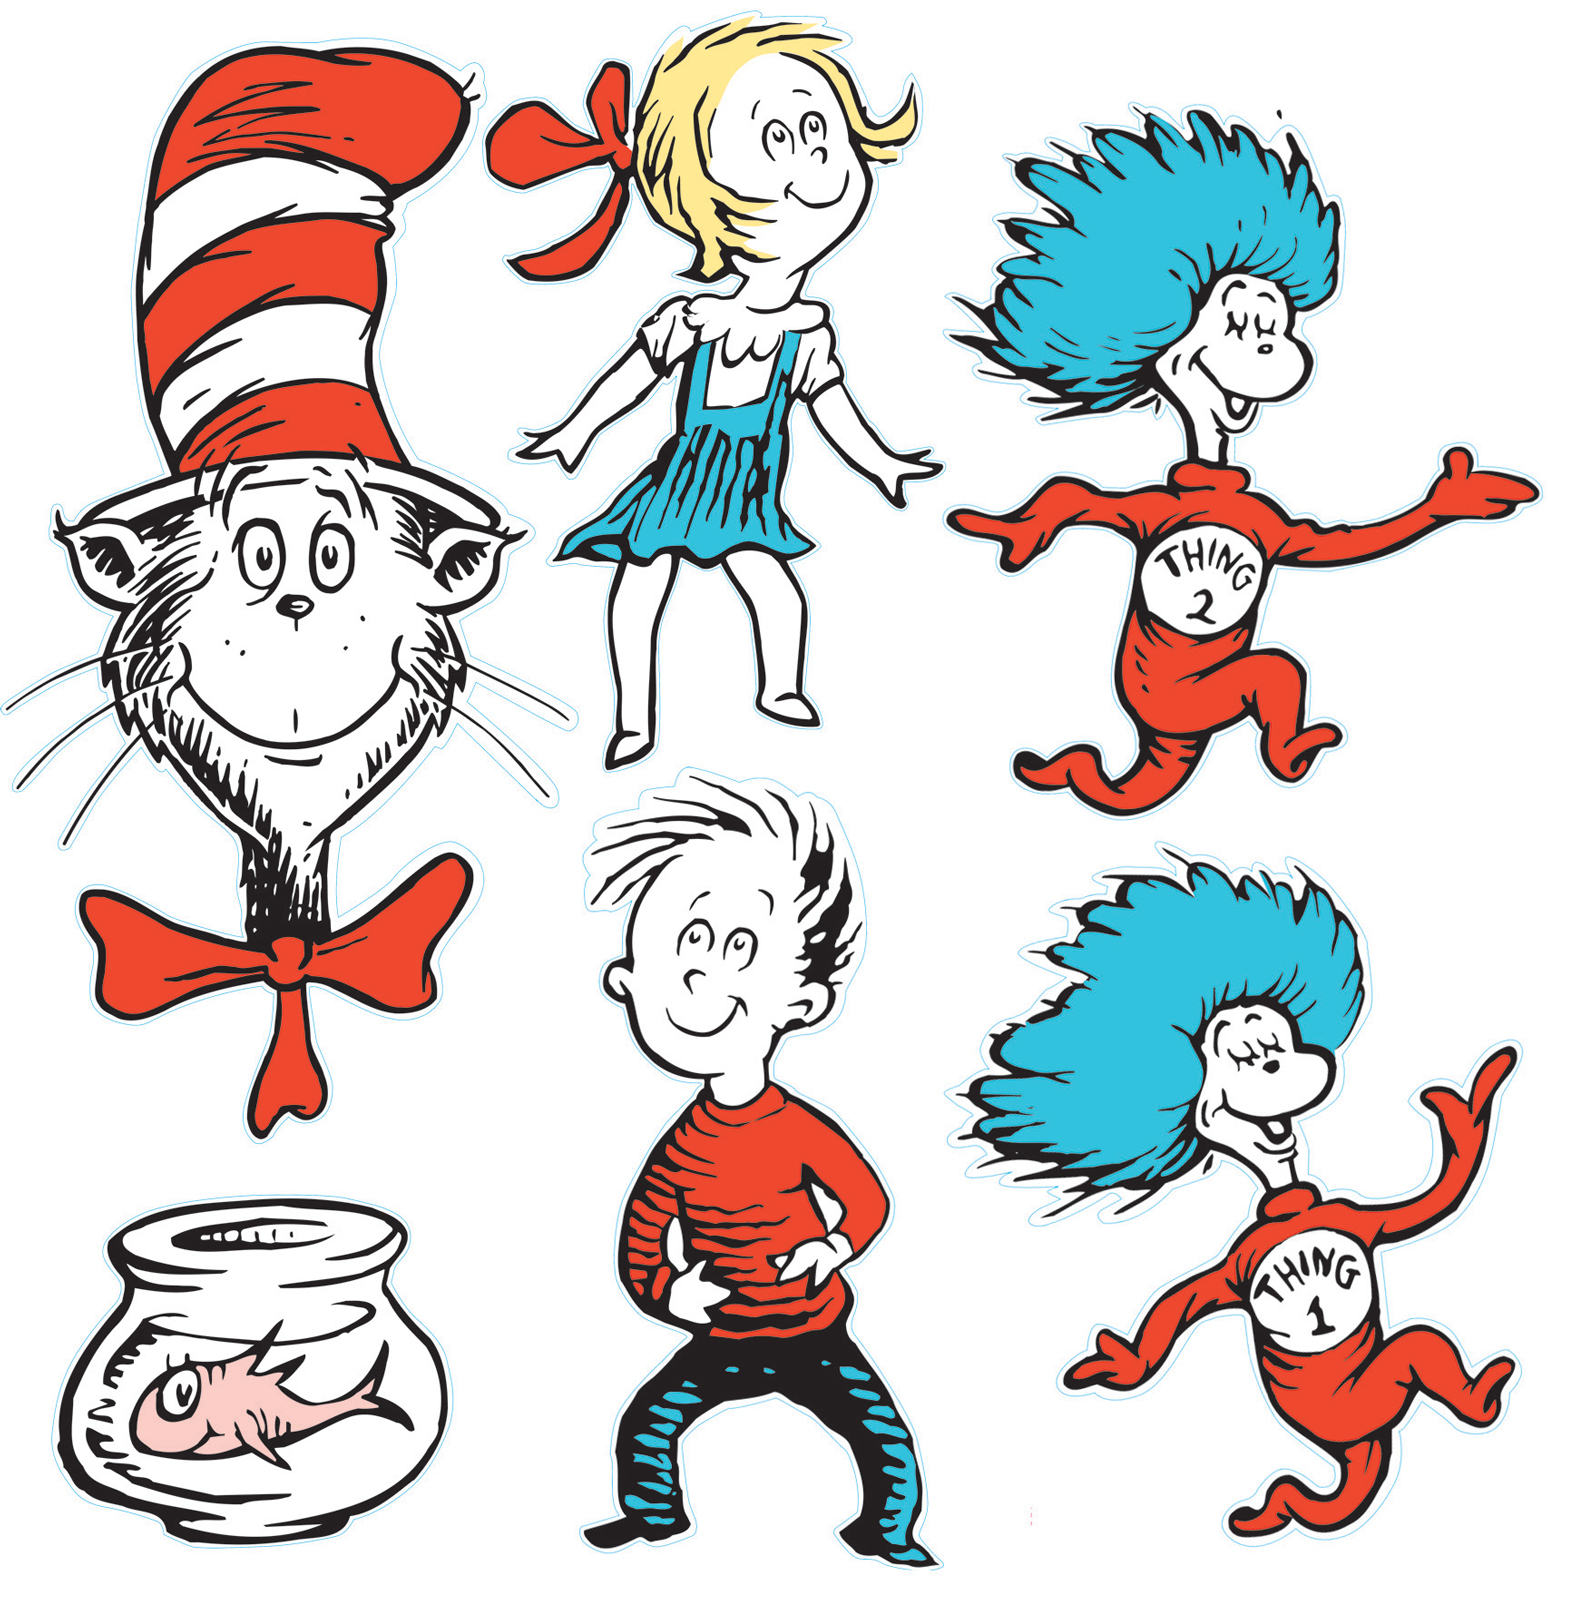 17 Best images about Dr. Seuss YW on Pinterest | Cats, Fabric ... clip art freeuse